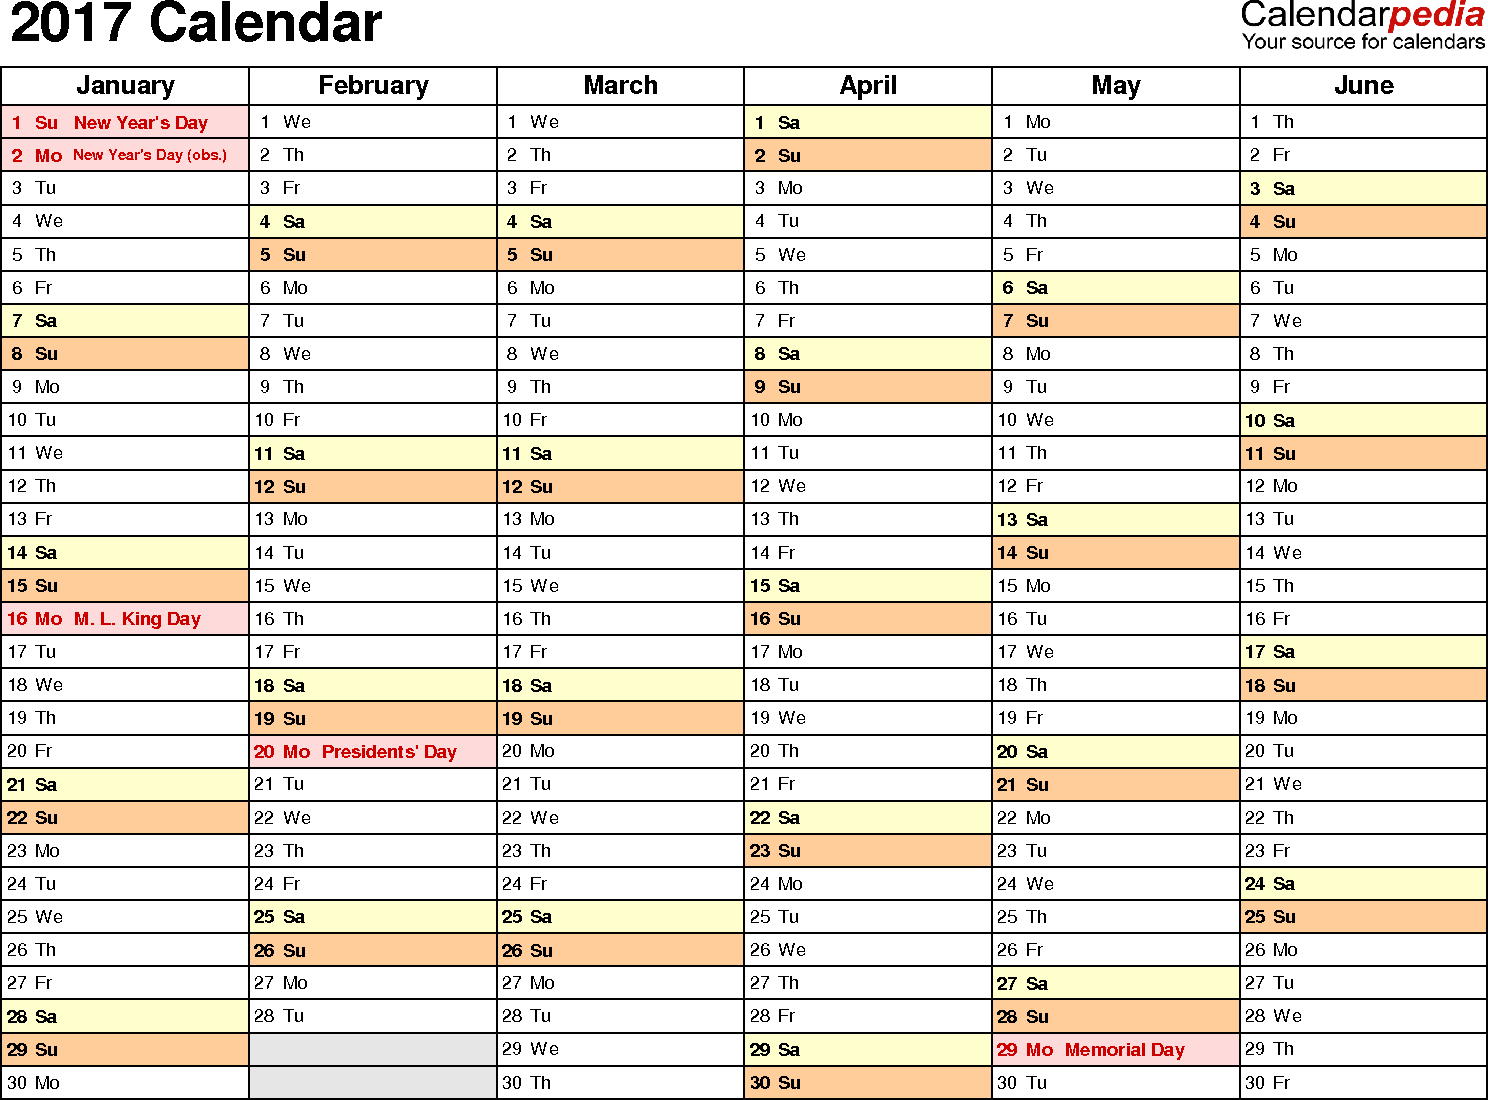 Ediblewildsus  Splendid  Calendar  Download  Free Printable Excel Templates Xls With Inspiring Template   Calendar For Excel Months Horizontally  Pages Landscape Orientation With Nice Free Excel For Mac Also Subtracting In Excel In Addition Excel Mean And Excel In Life As Well As Insert Line In Excel Additionally How To Add Cells Together In Excel From Calendarpediacom With Ediblewildsus  Inspiring  Calendar  Download  Free Printable Excel Templates Xls With Nice Template   Calendar For Excel Months Horizontally  Pages Landscape Orientation And Splendid Free Excel For Mac Also Subtracting In Excel In Addition Excel Mean From Calendarpediacom